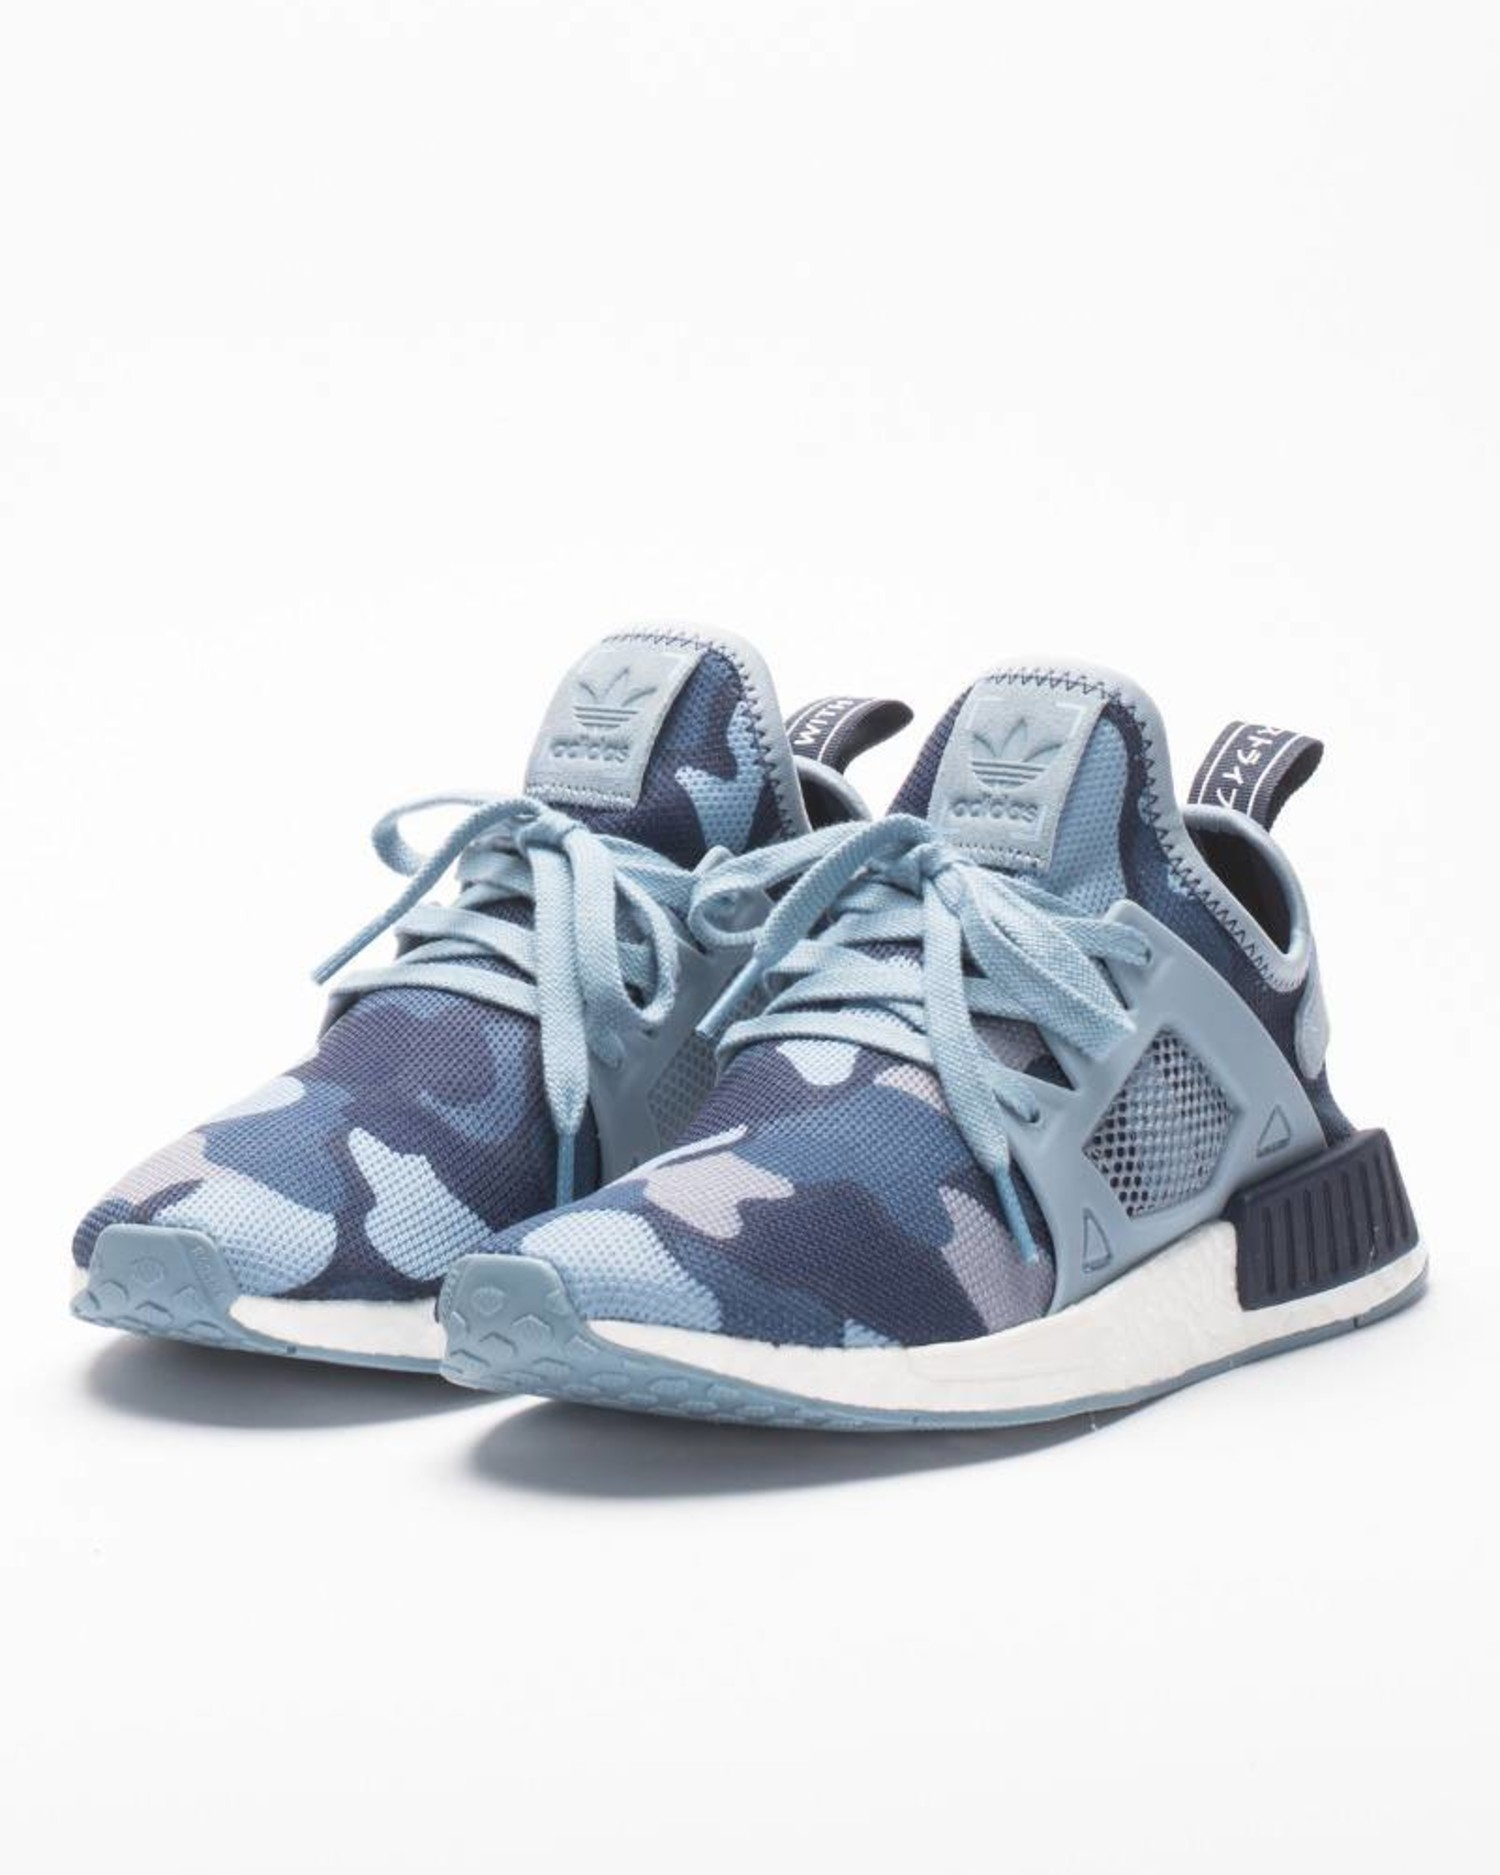 pretty nice 4b702 5c42b Adidas Adidas womens NMD XR1 black friday soft blue